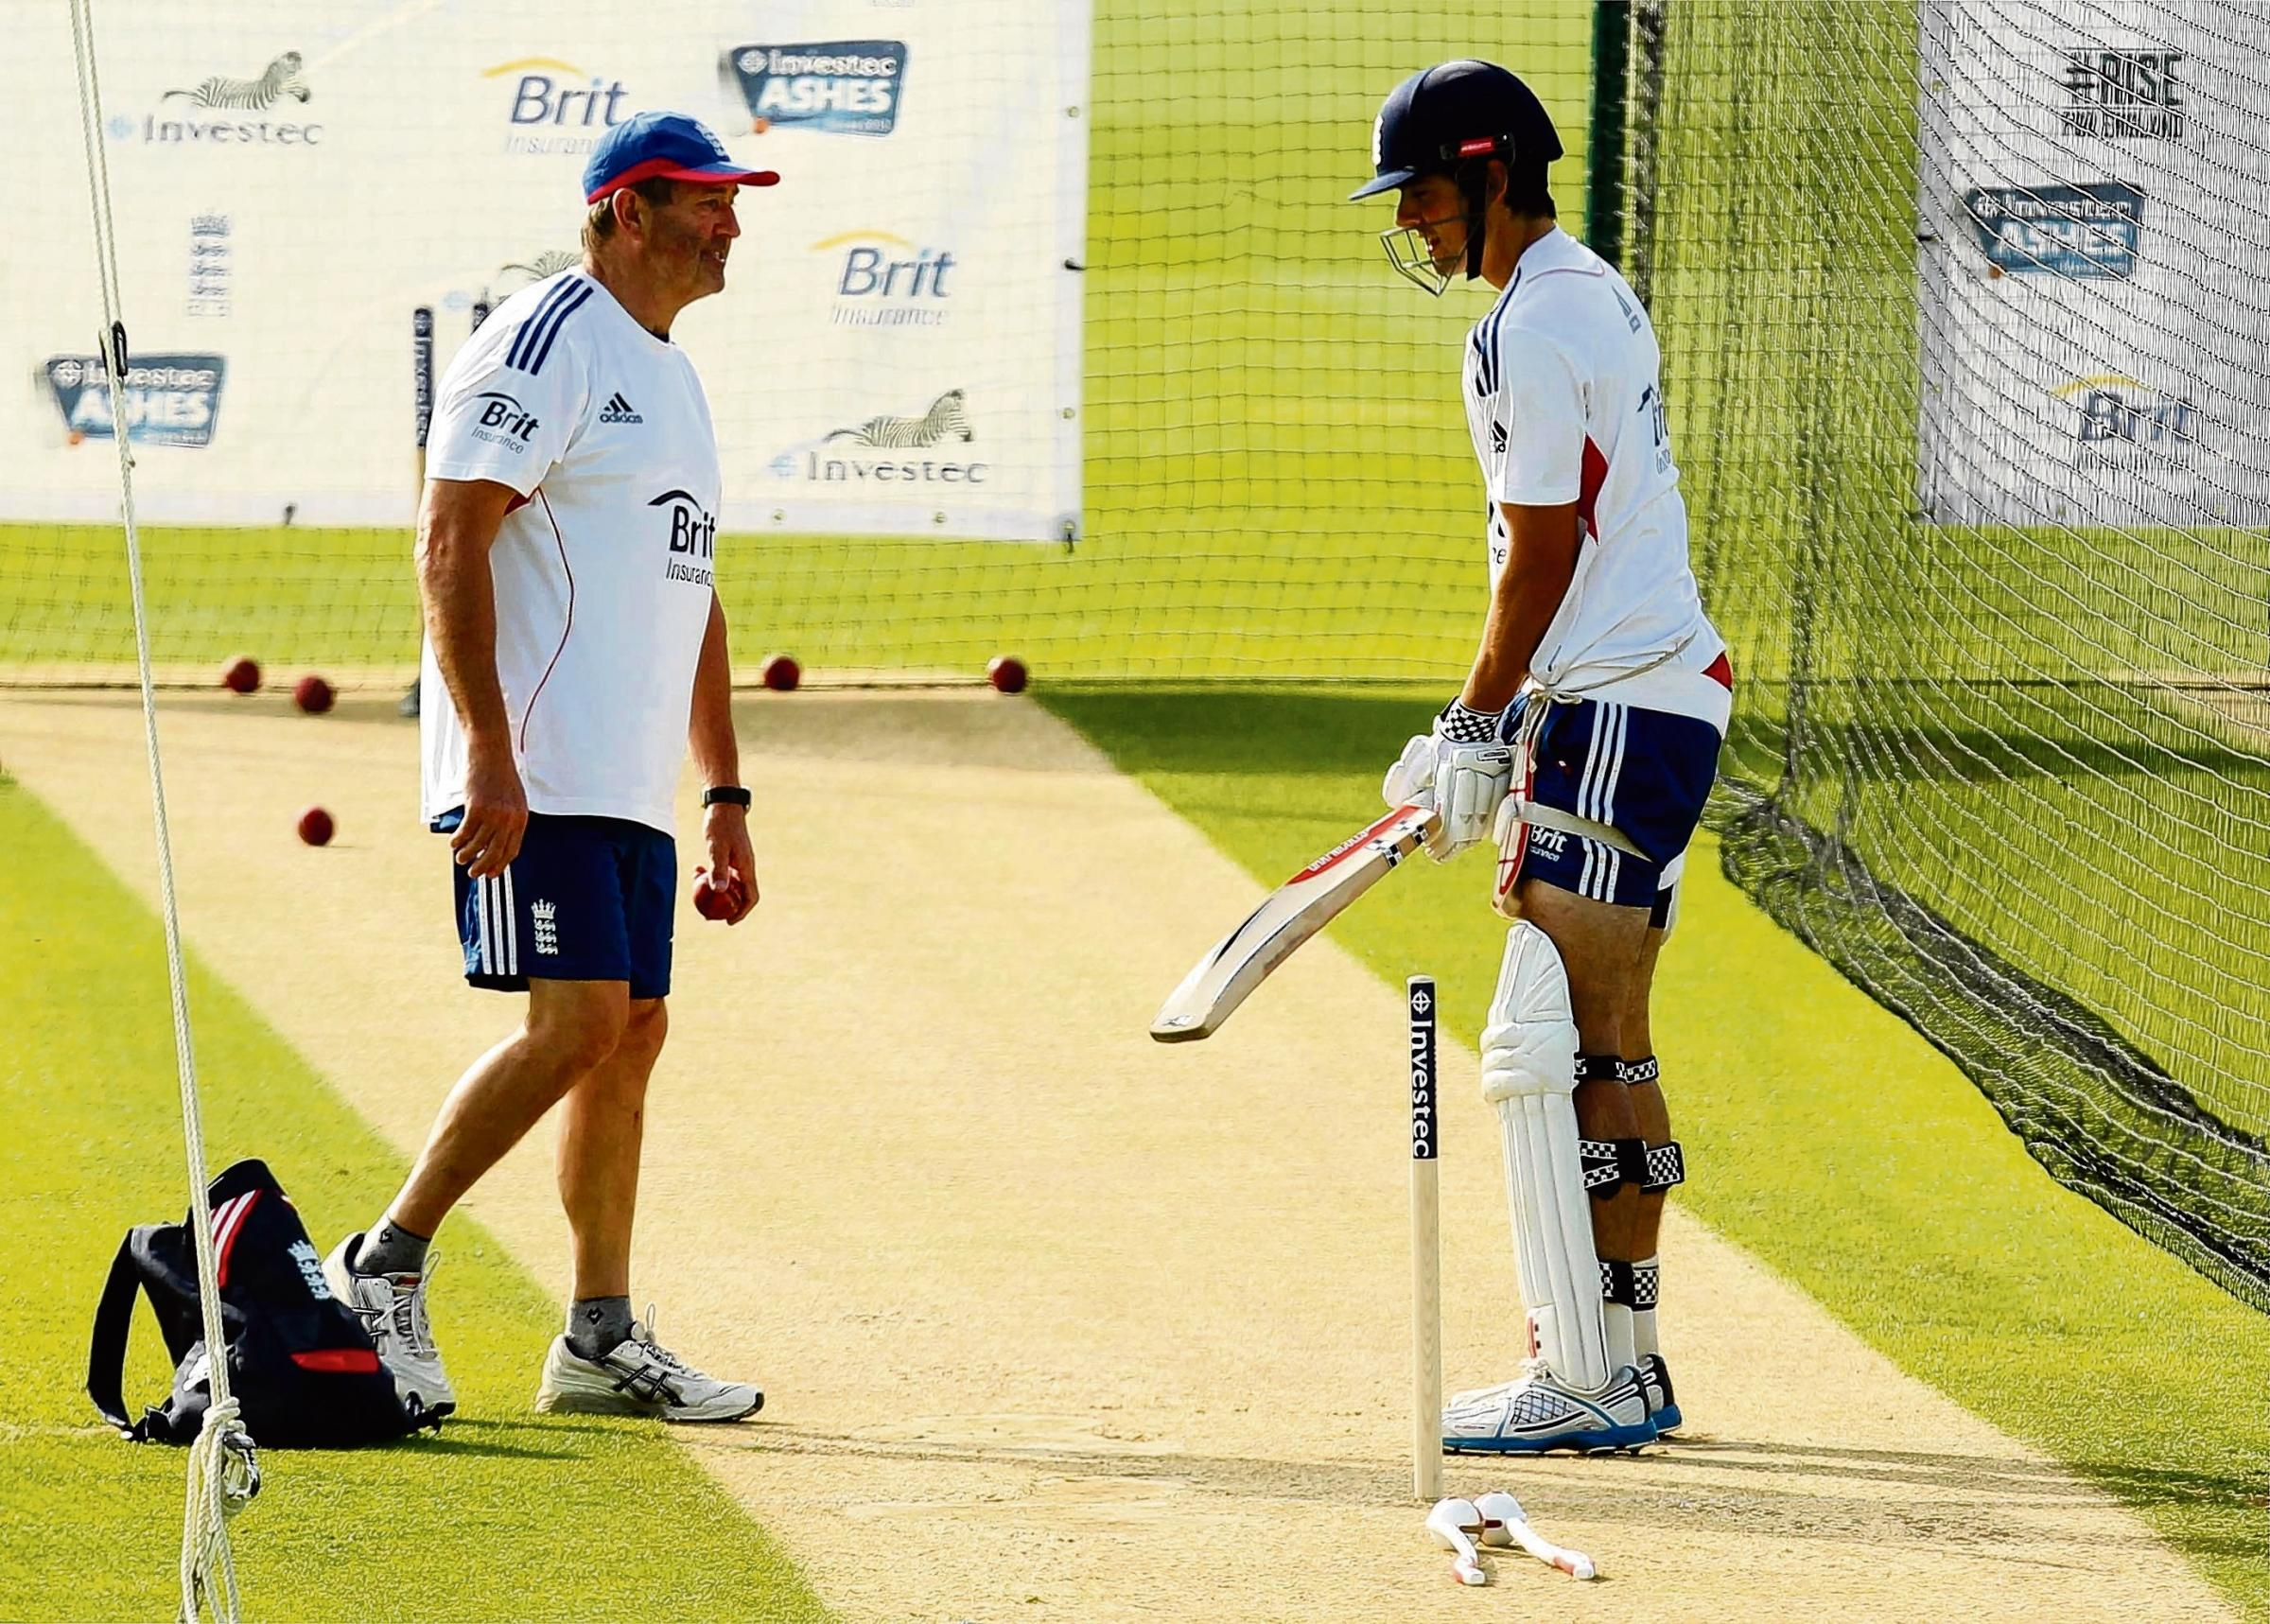 Graham Gooch working with Alastair Cook in the nets in Australia